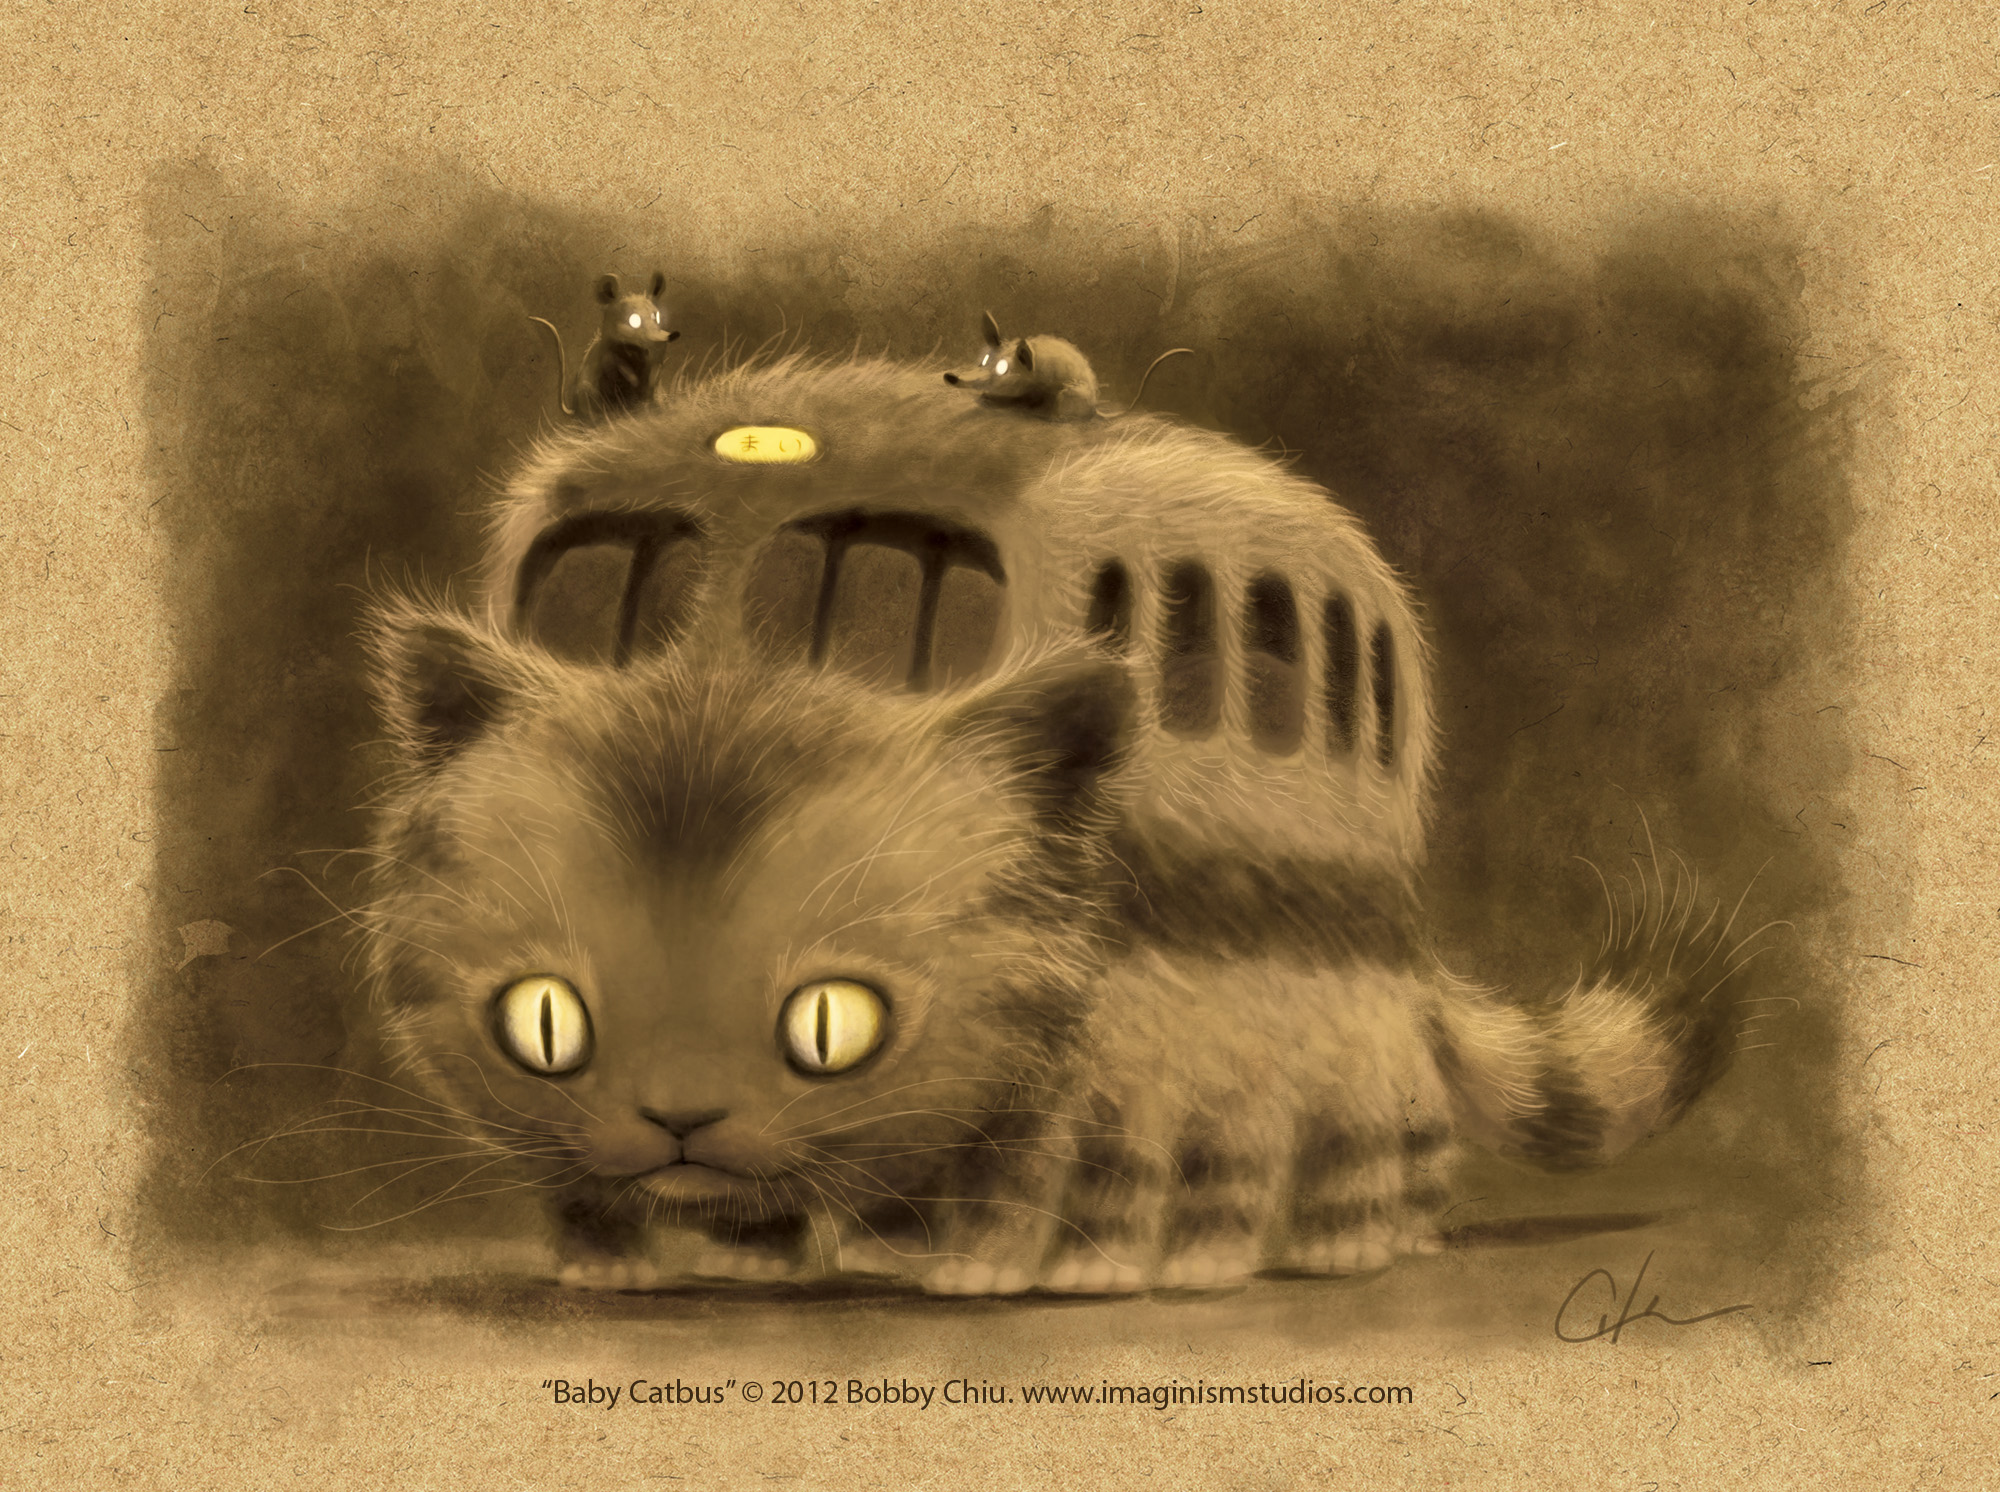 baby_catbus_by_imaginism-d54wjdl